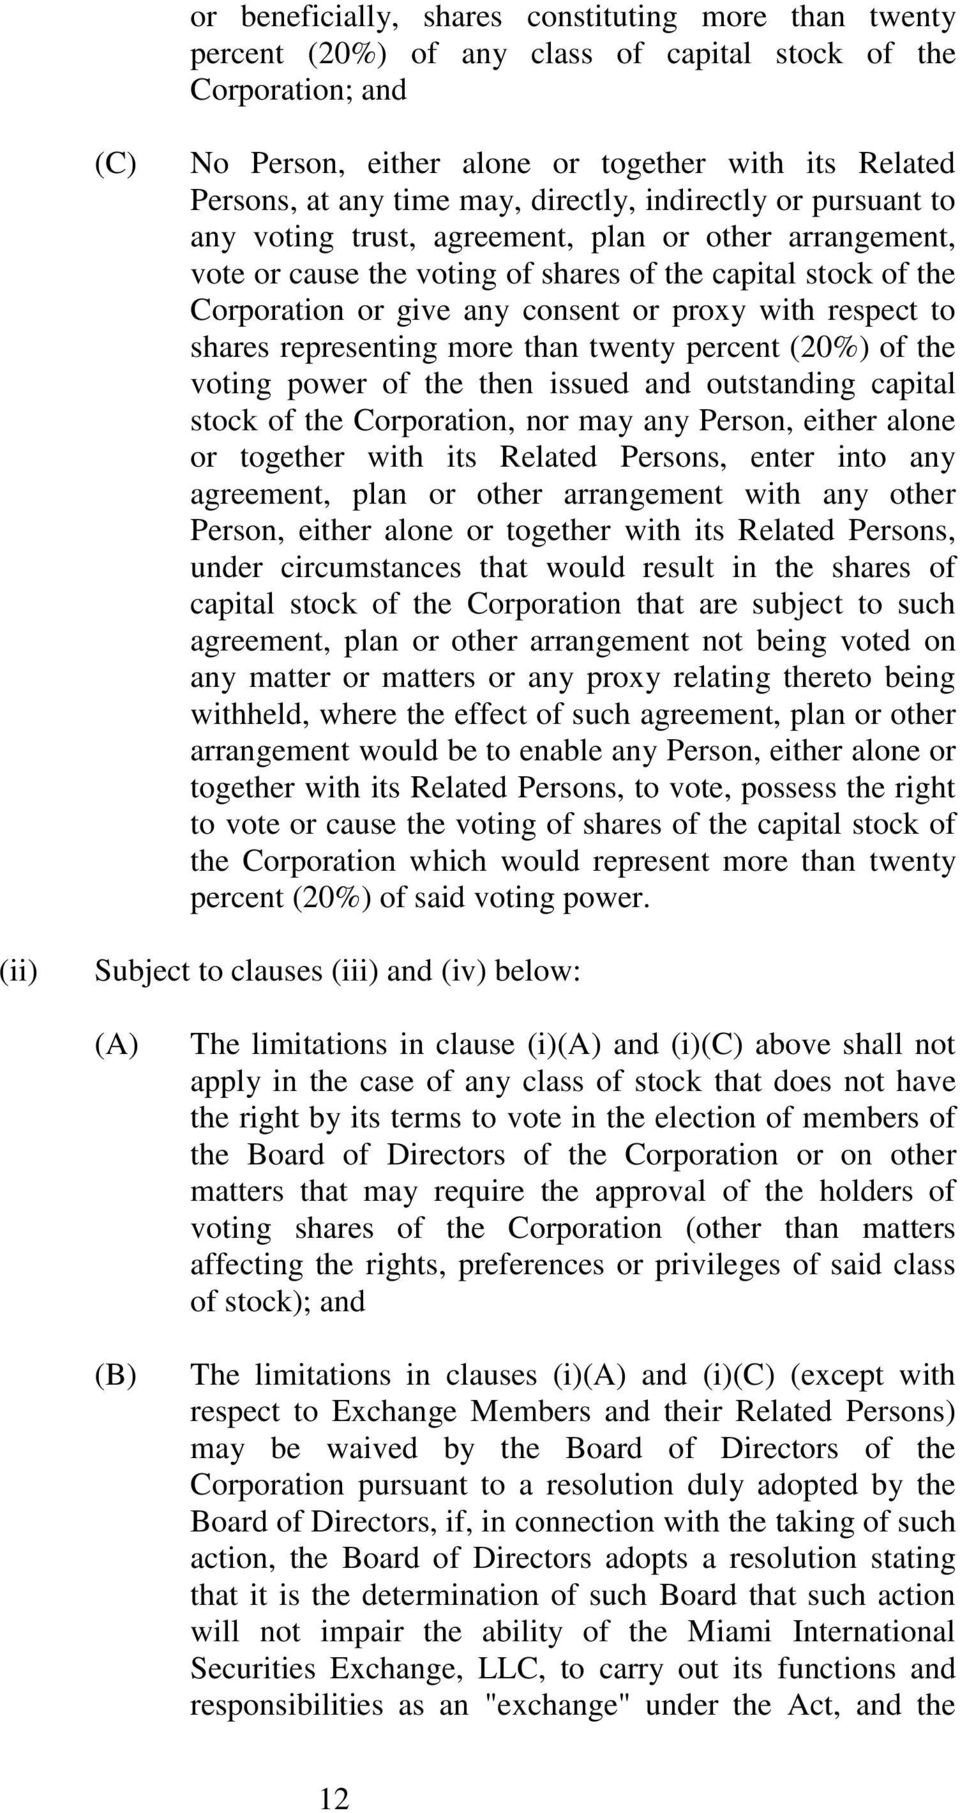 proxy with respect to shares representing more than twenty percent (20%) of the voting power of the then issued and outstanding capital stock of the Corporation, nor may any Person, either alone or